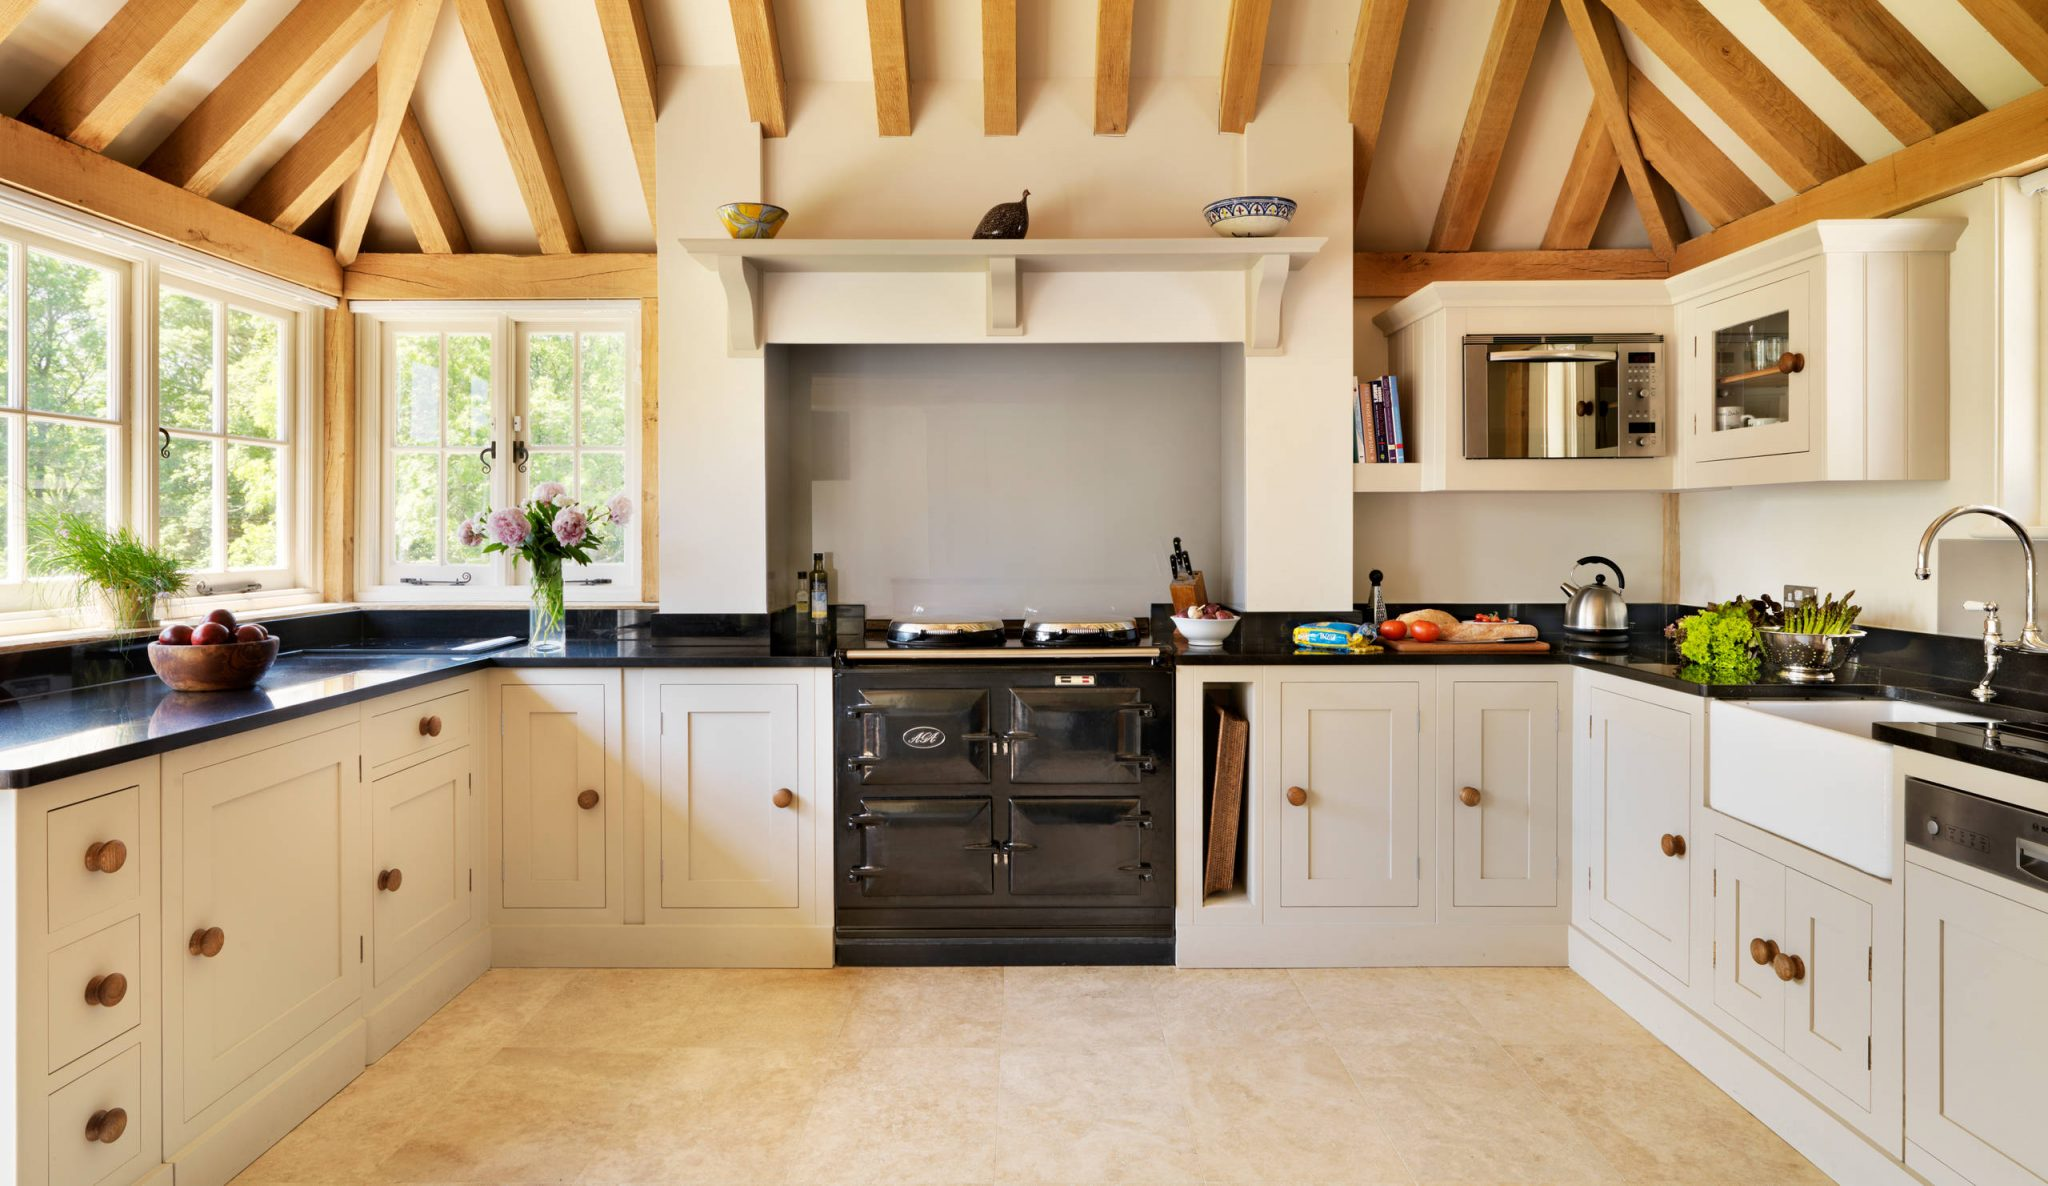 Meet The Aga The Classic British Stove That S Gaining Popularity My Ideal Home